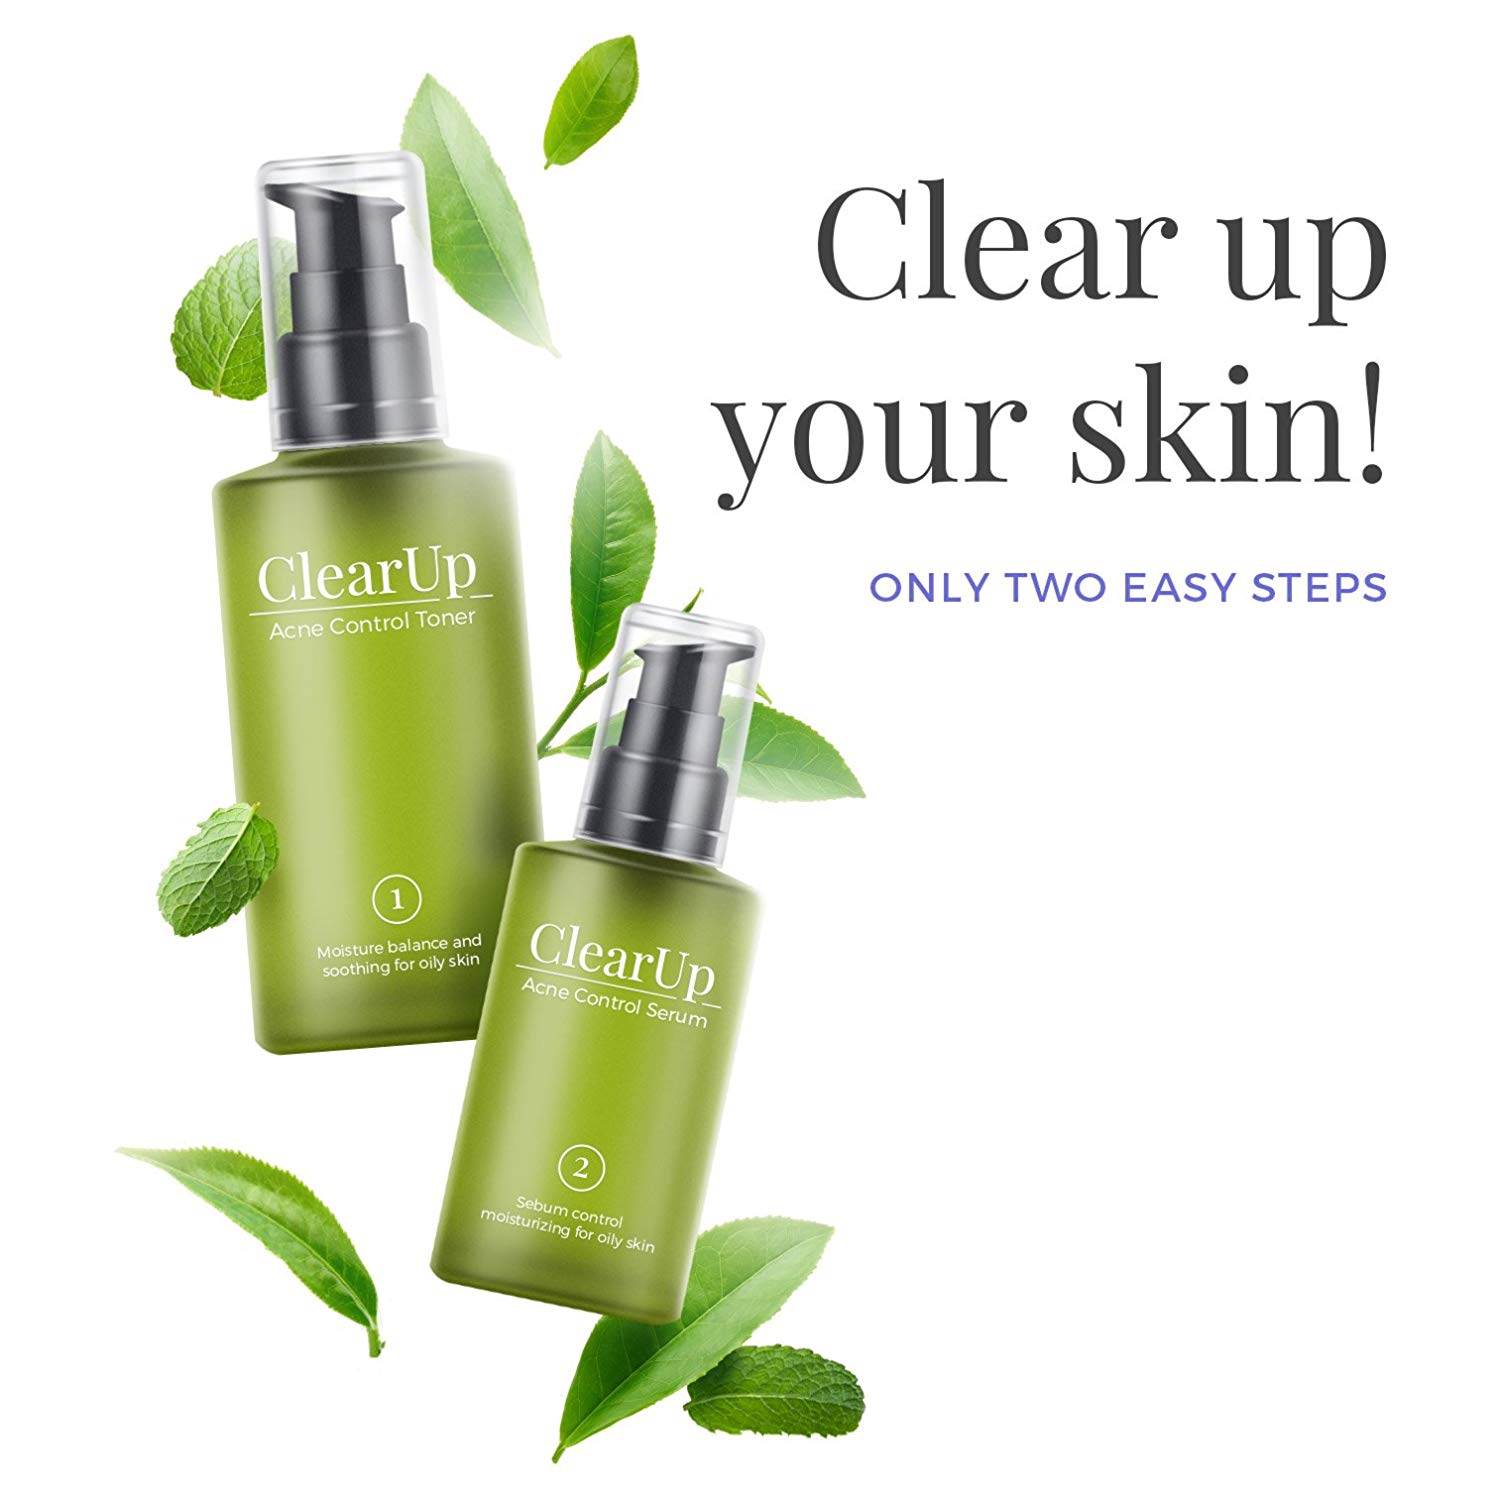 Clearup-Acne-Control-product image